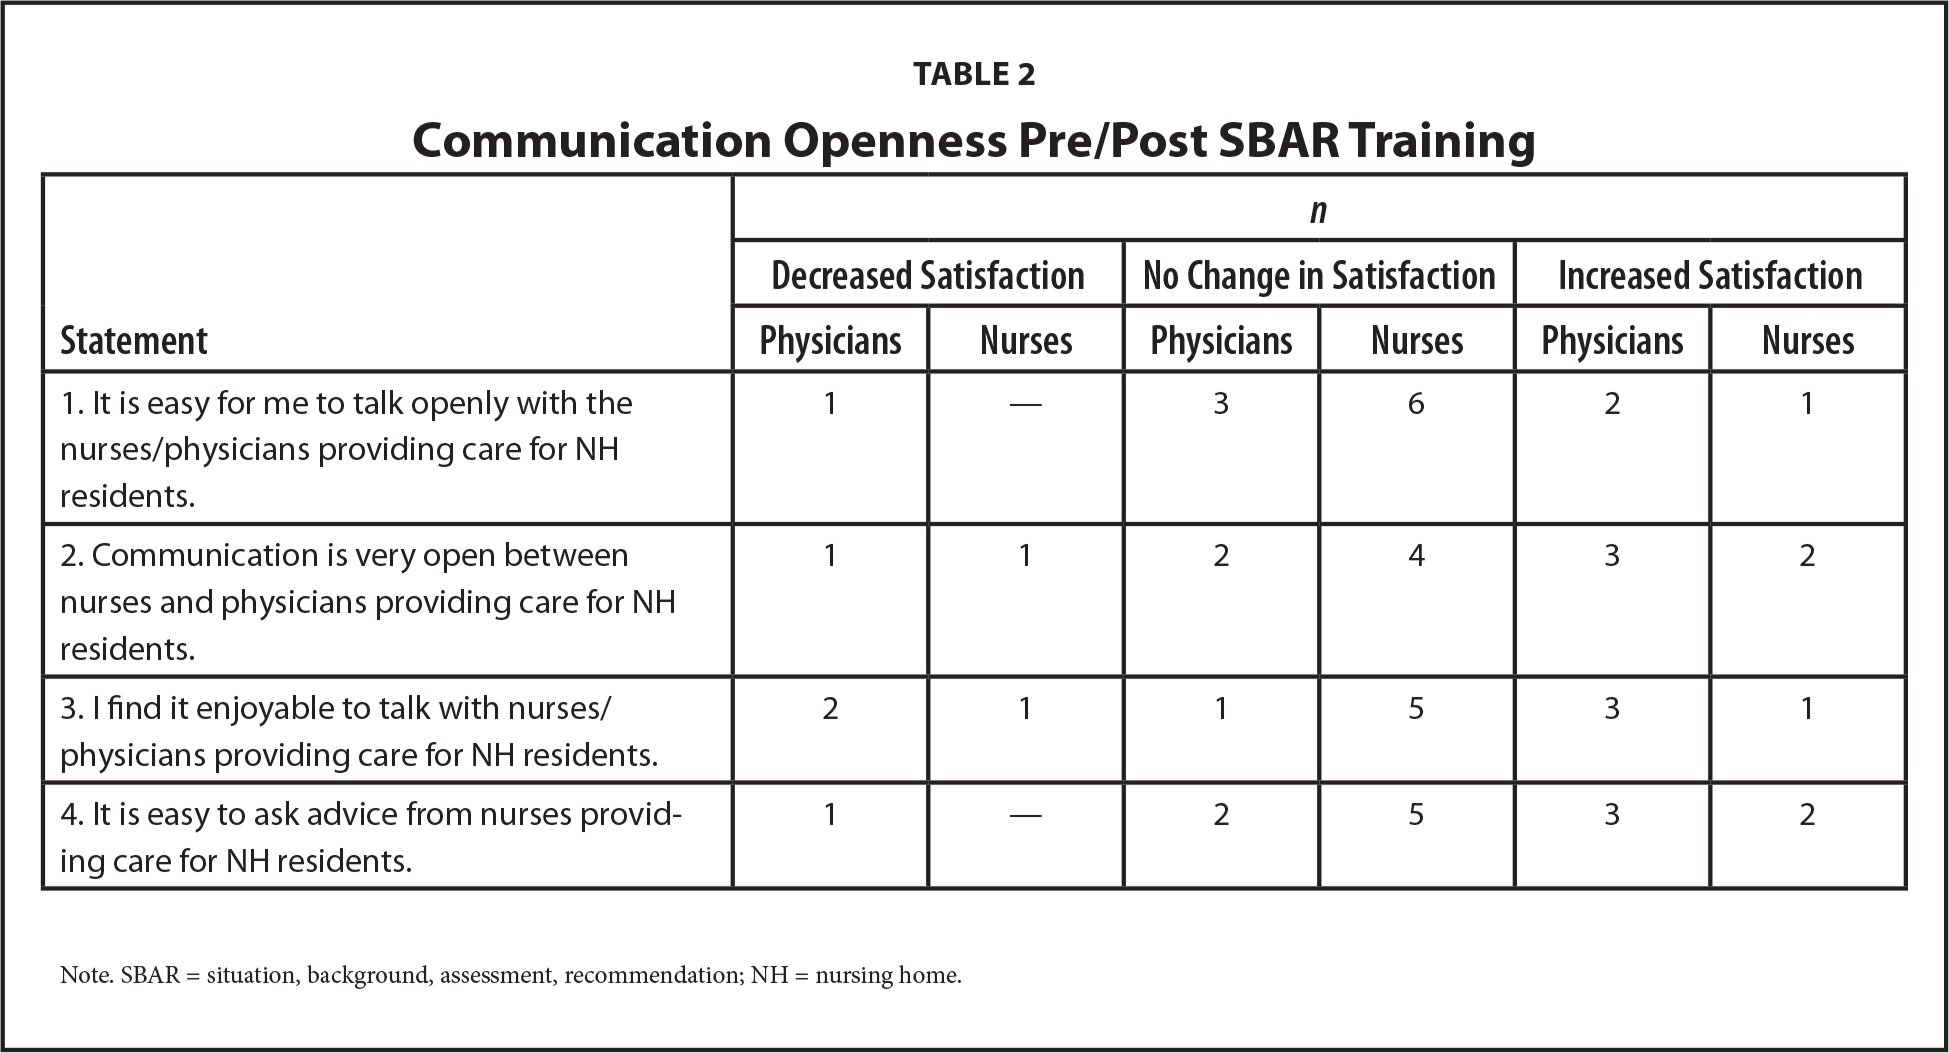 Communication Openness Pre/Post SBAR Training